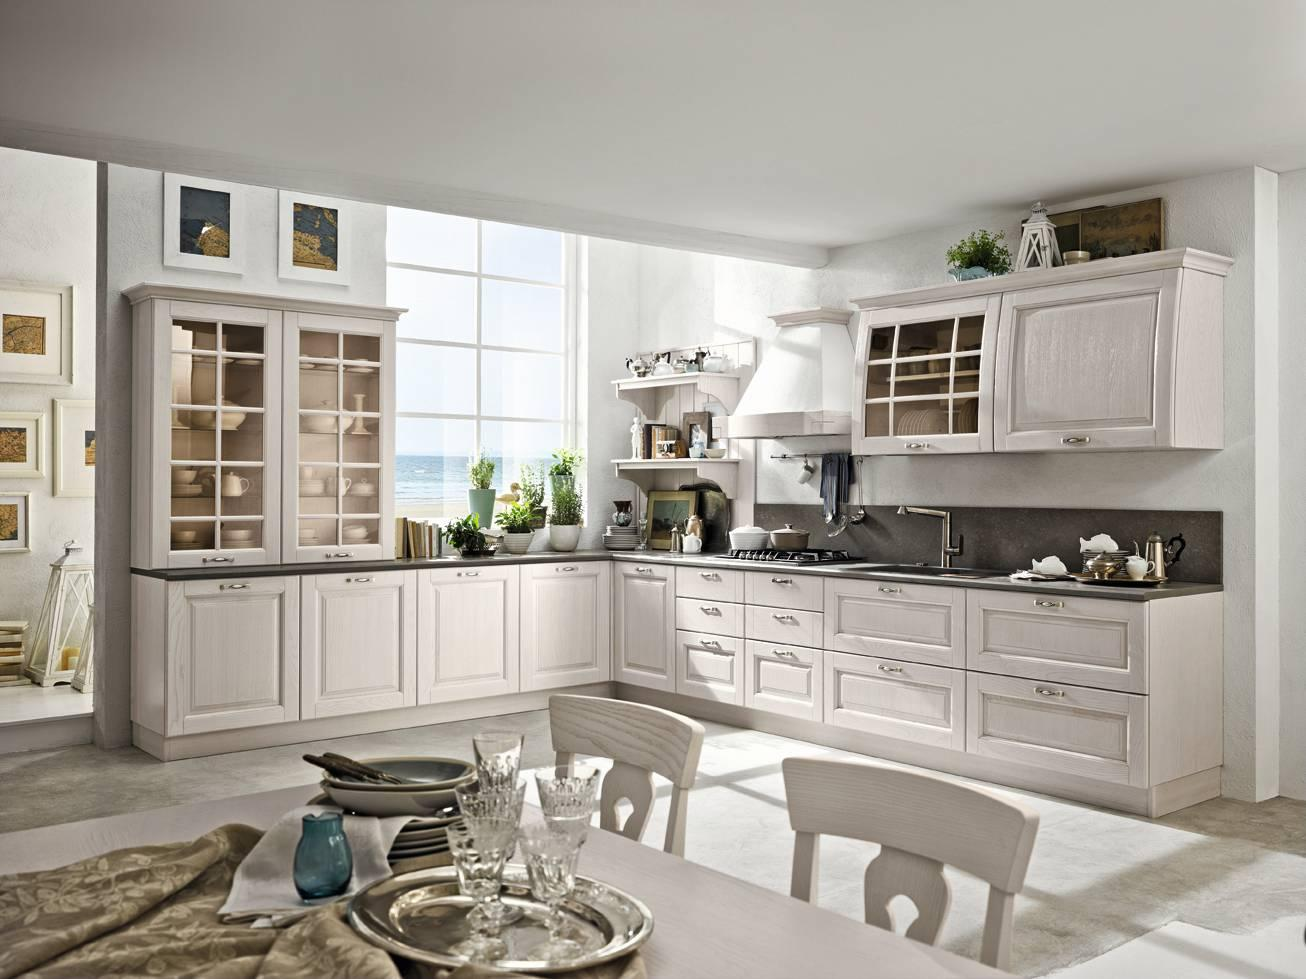 Cucina Stile Country Francese | Cucina In Stile Country Sprea ...